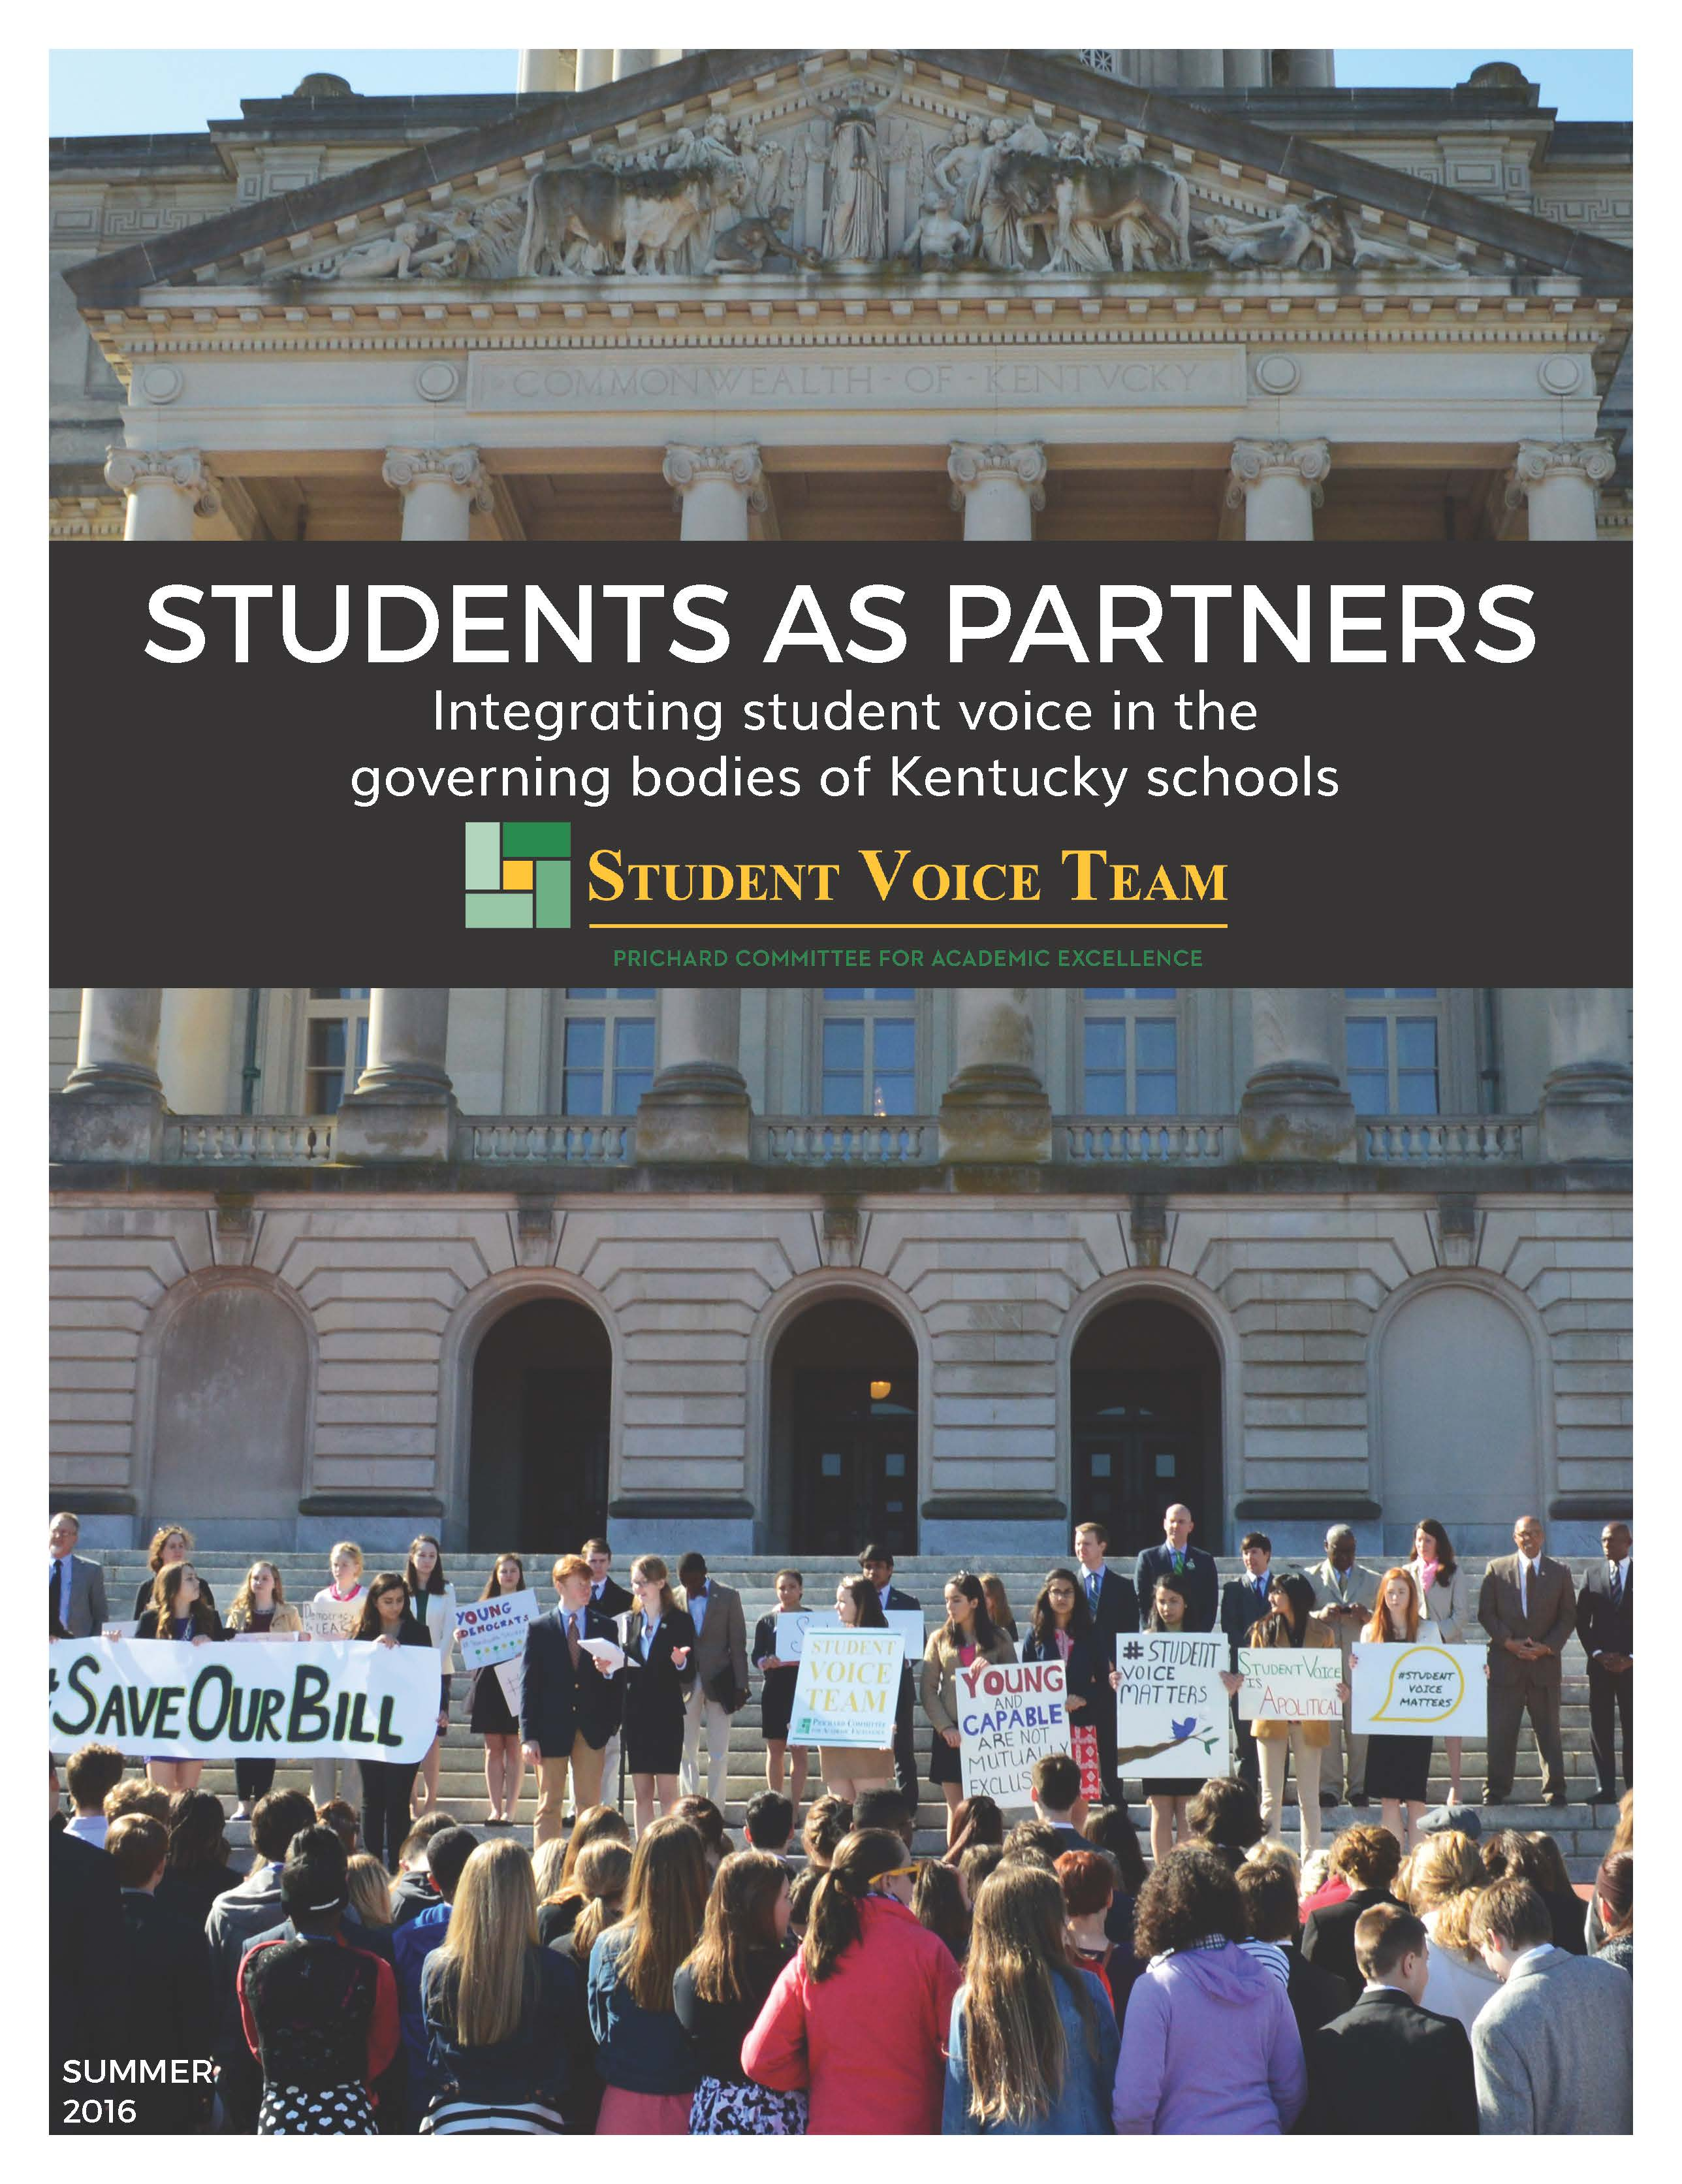 Students as Partners: Integrating Student Voice in Kentucky Schools